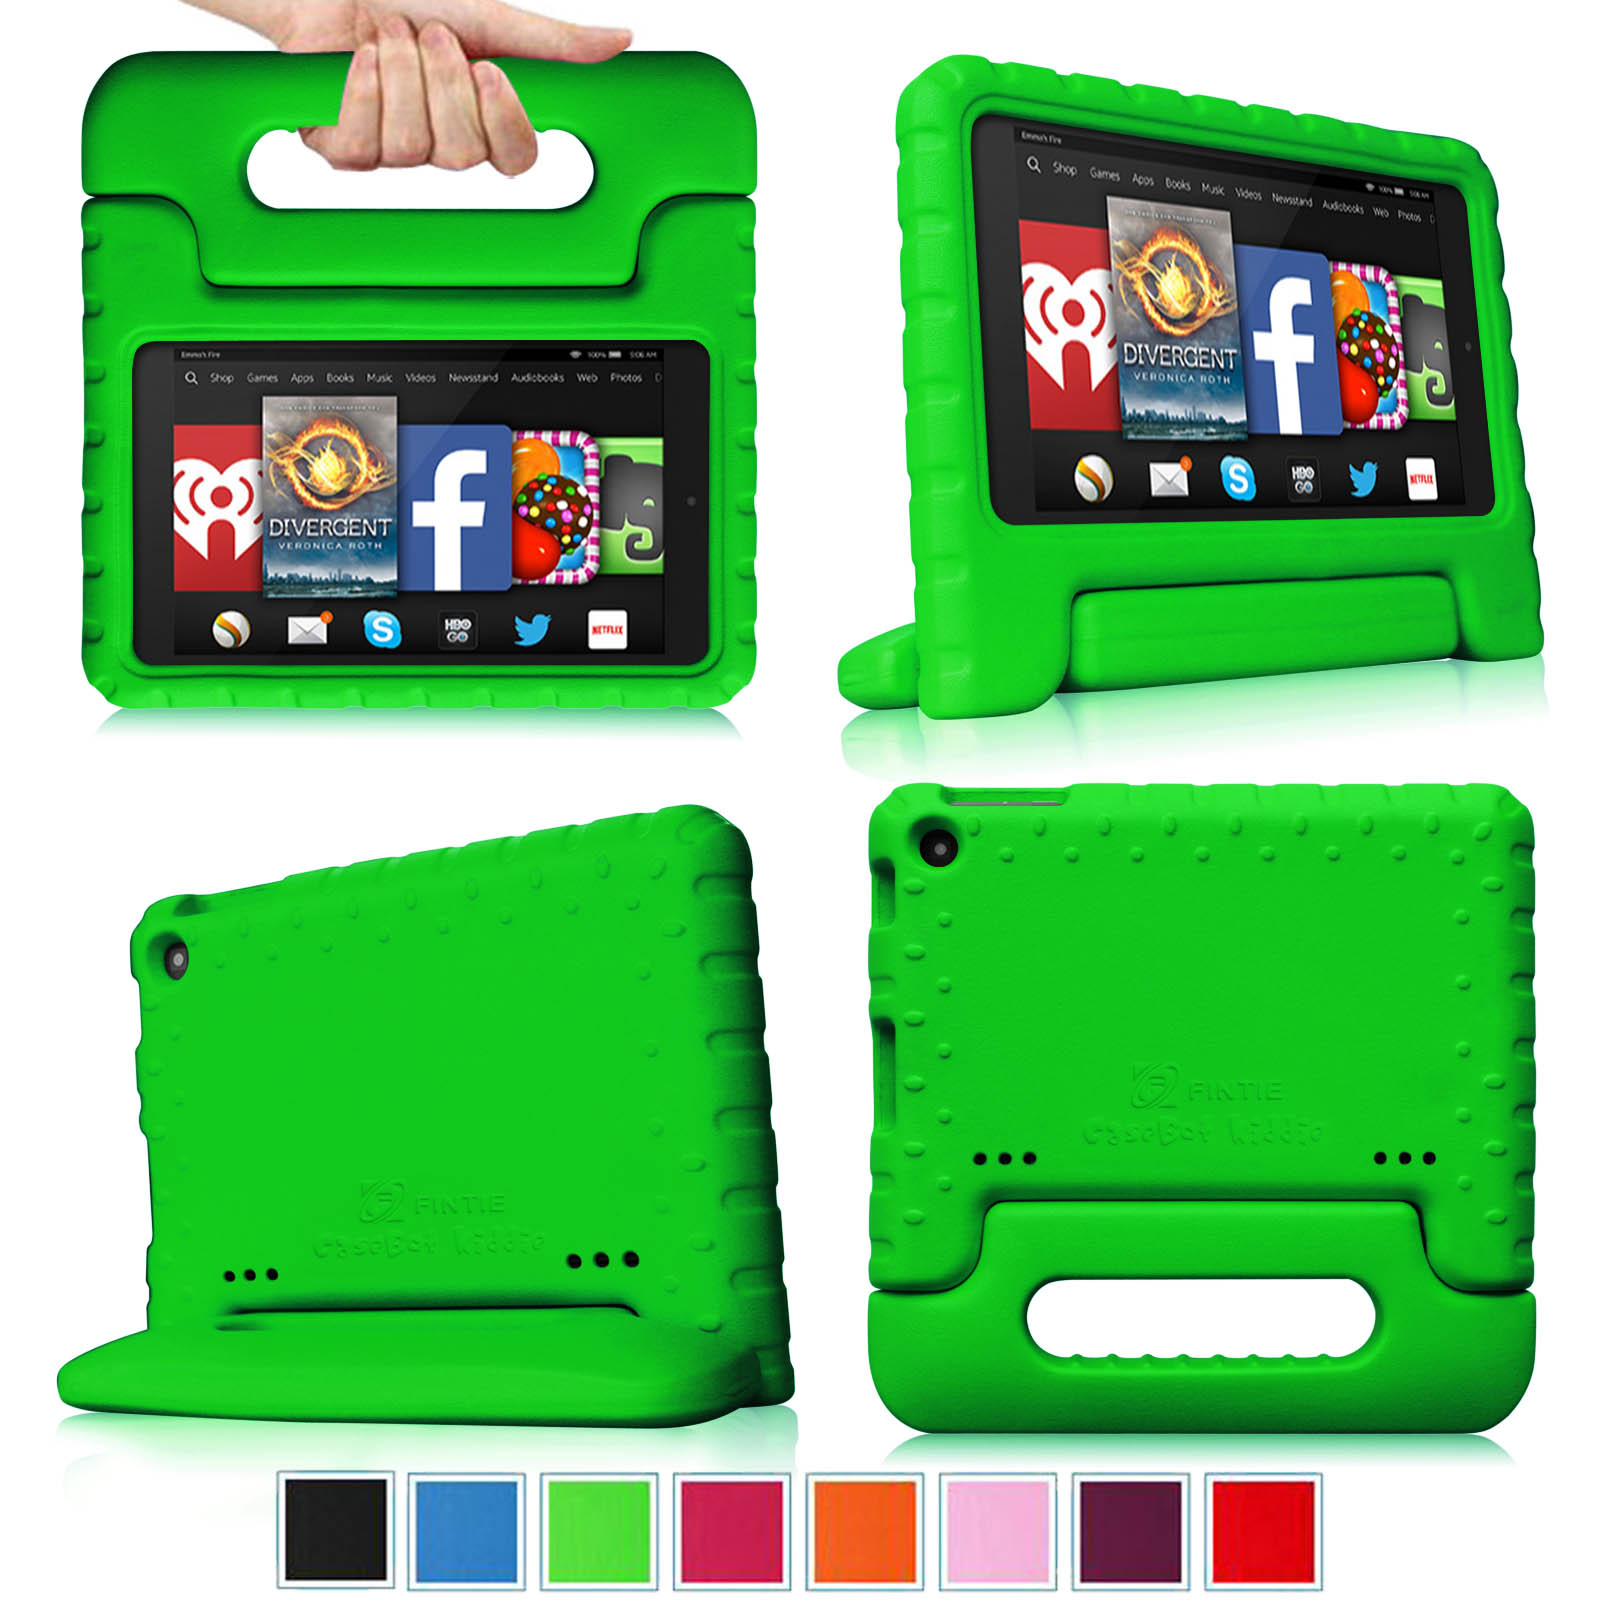 Fintie Light Weight Shock Proof Handle Case for Kids Specially made for Kindle Fire HD 7 2014 Oct Release, Green